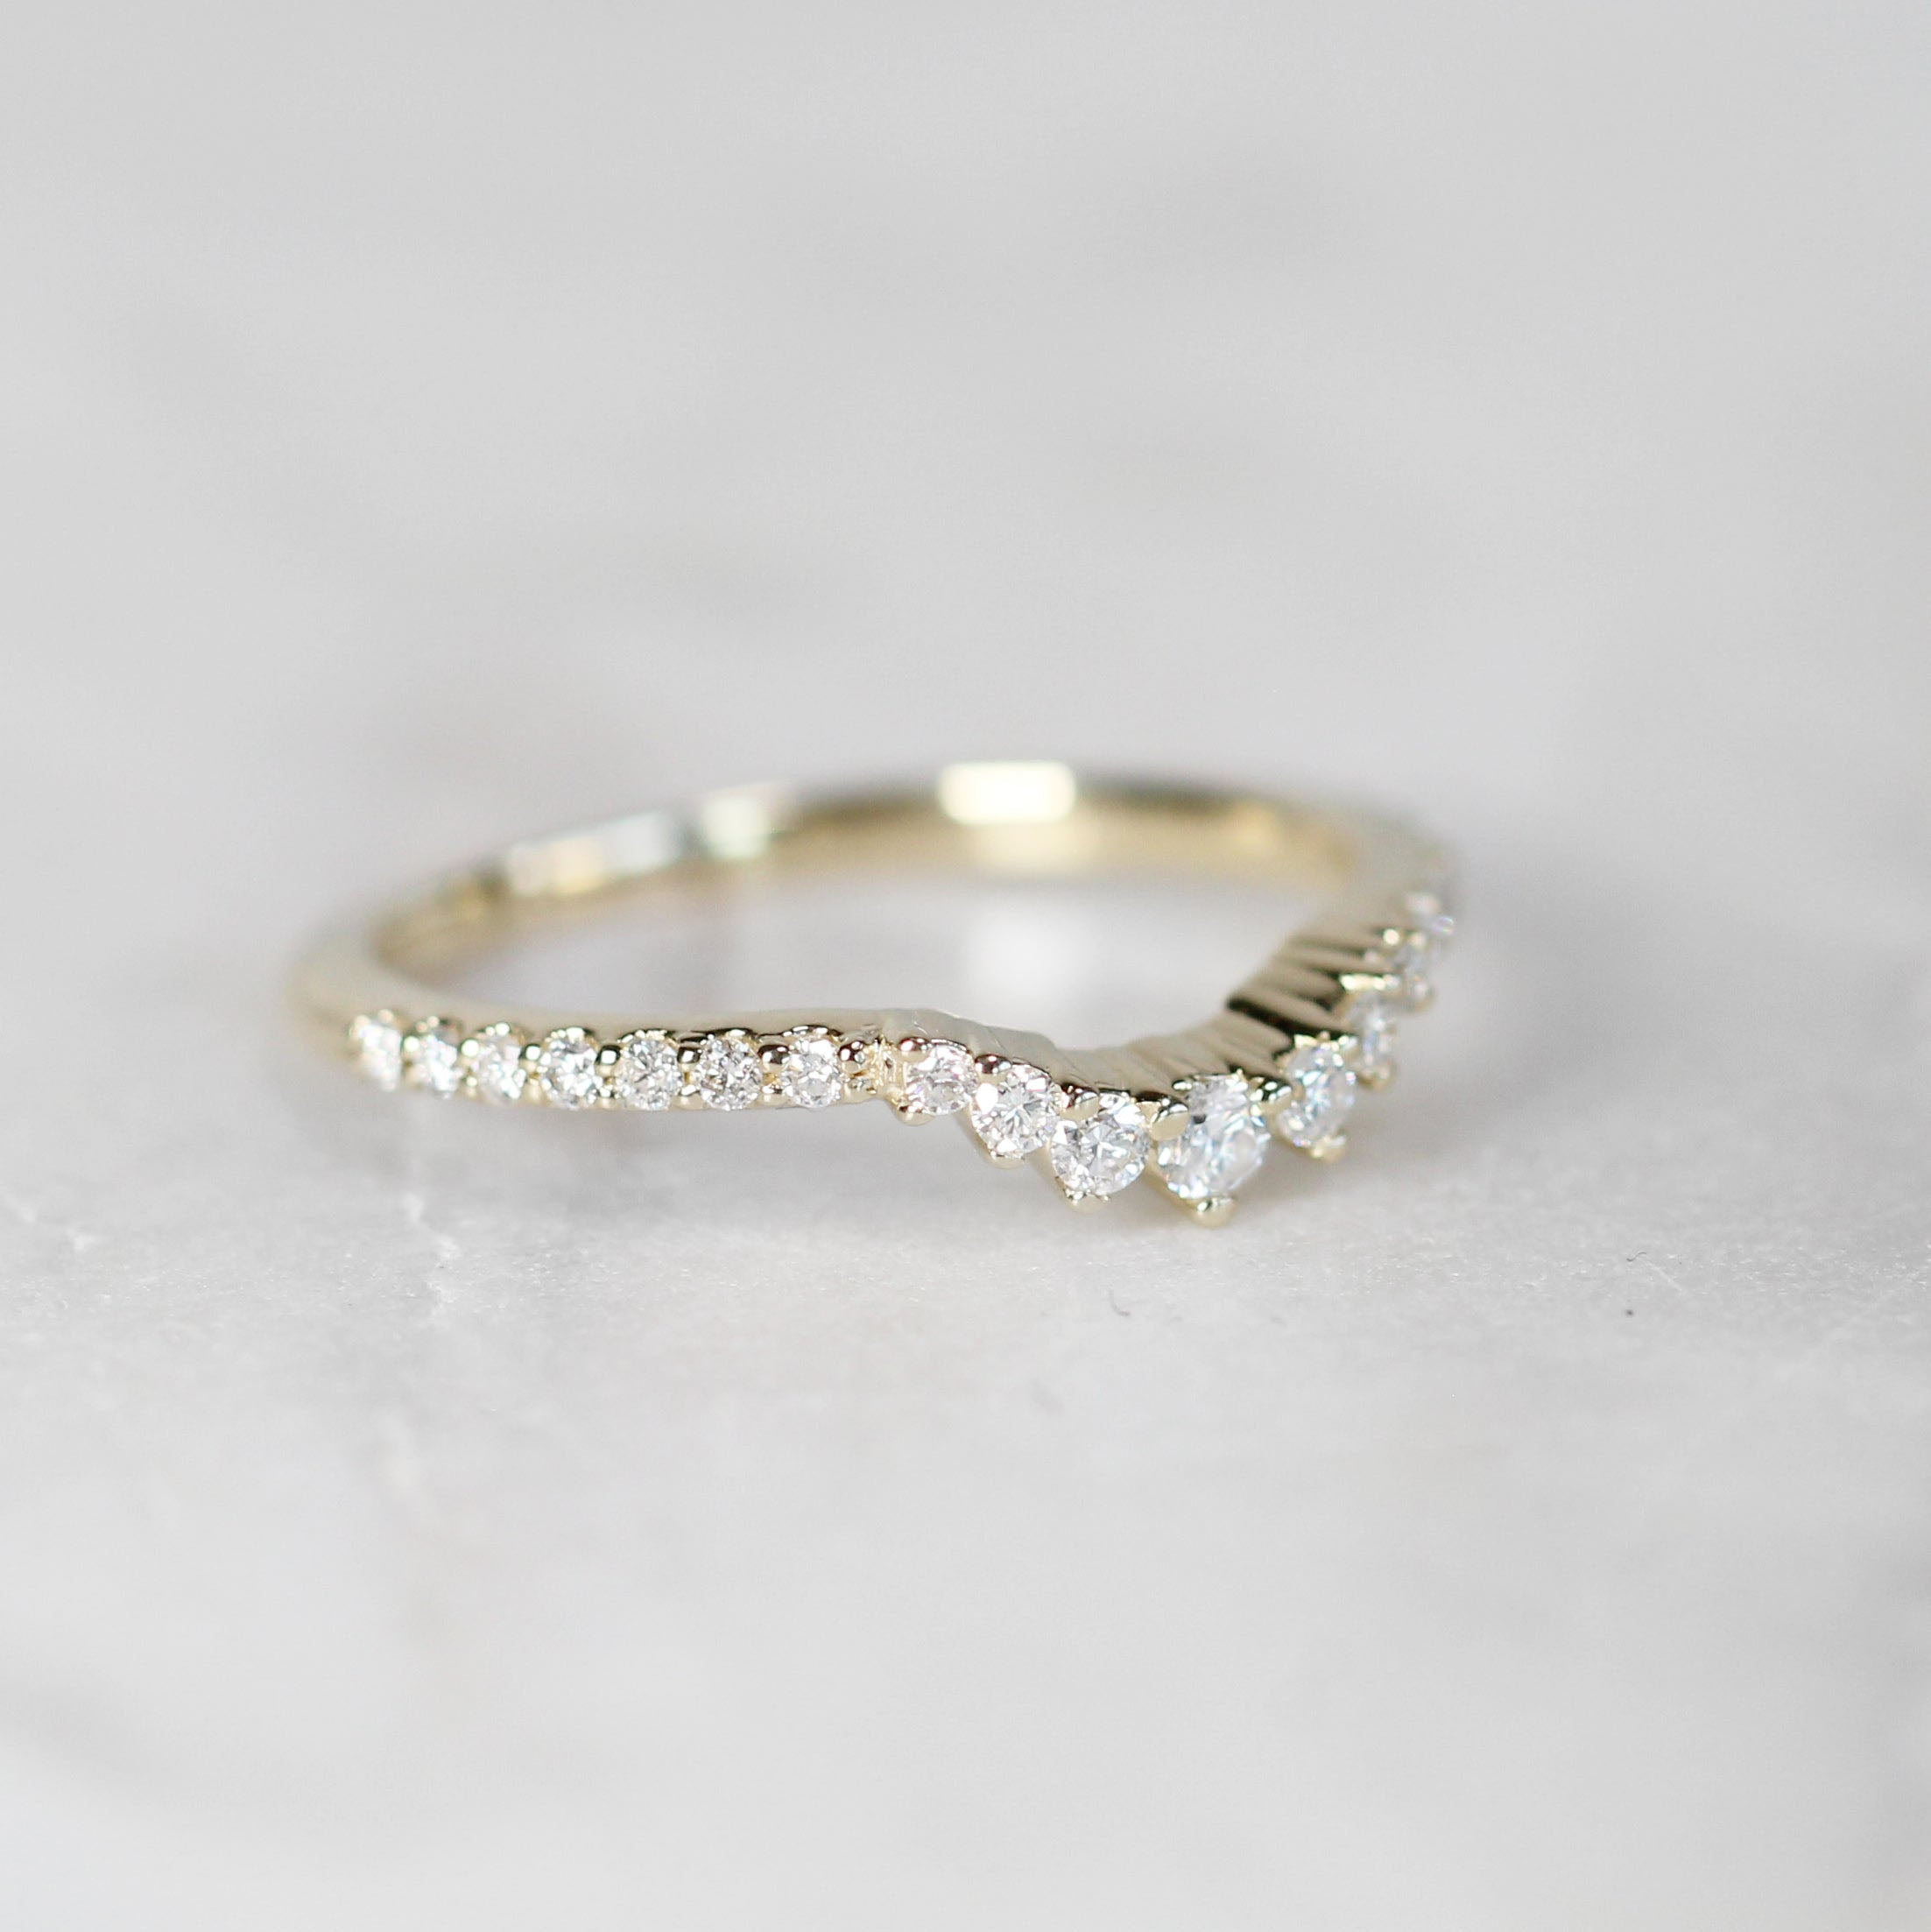 Maureen - Custom Designed Curved Diamond Wedding Stacking Band - Made to order - Salt & Pepper Celestial Diamond Engagement Rings and Wedding Bands  by Midwinter Co.